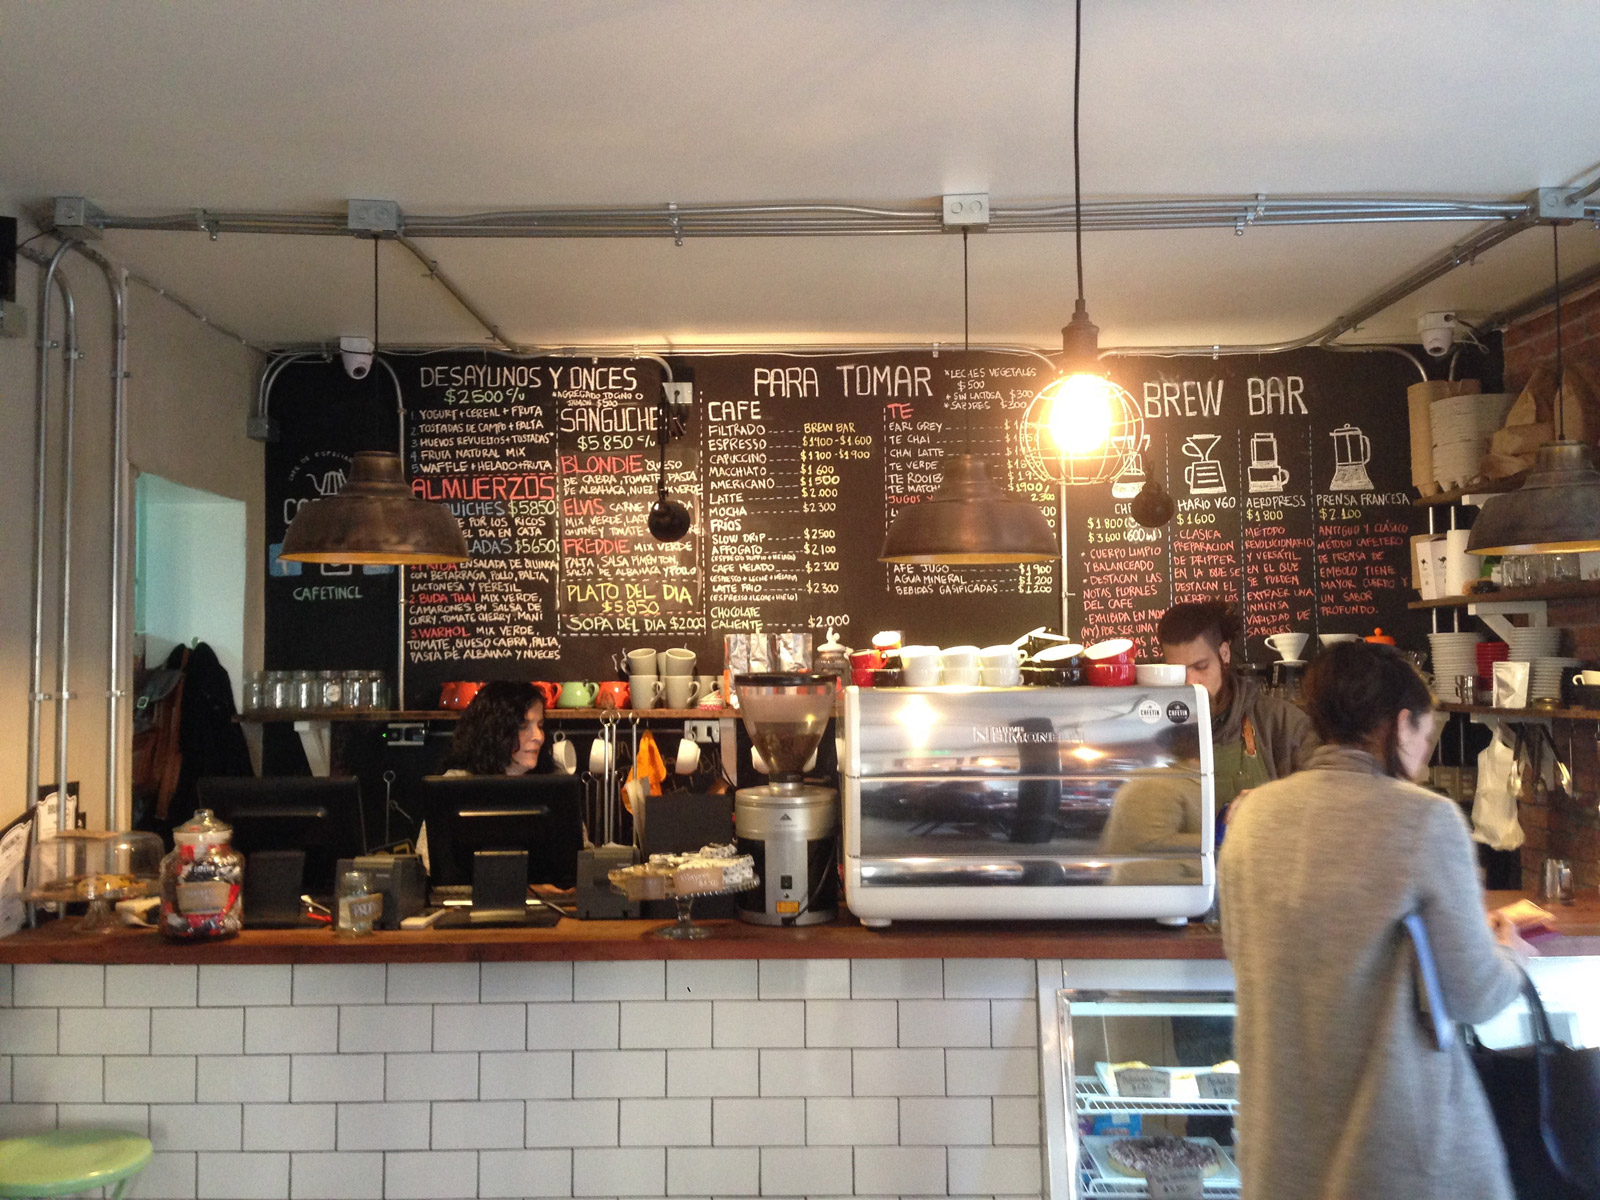 The menu at Cafetín, a great spot for coffee and artisan breakfasts.